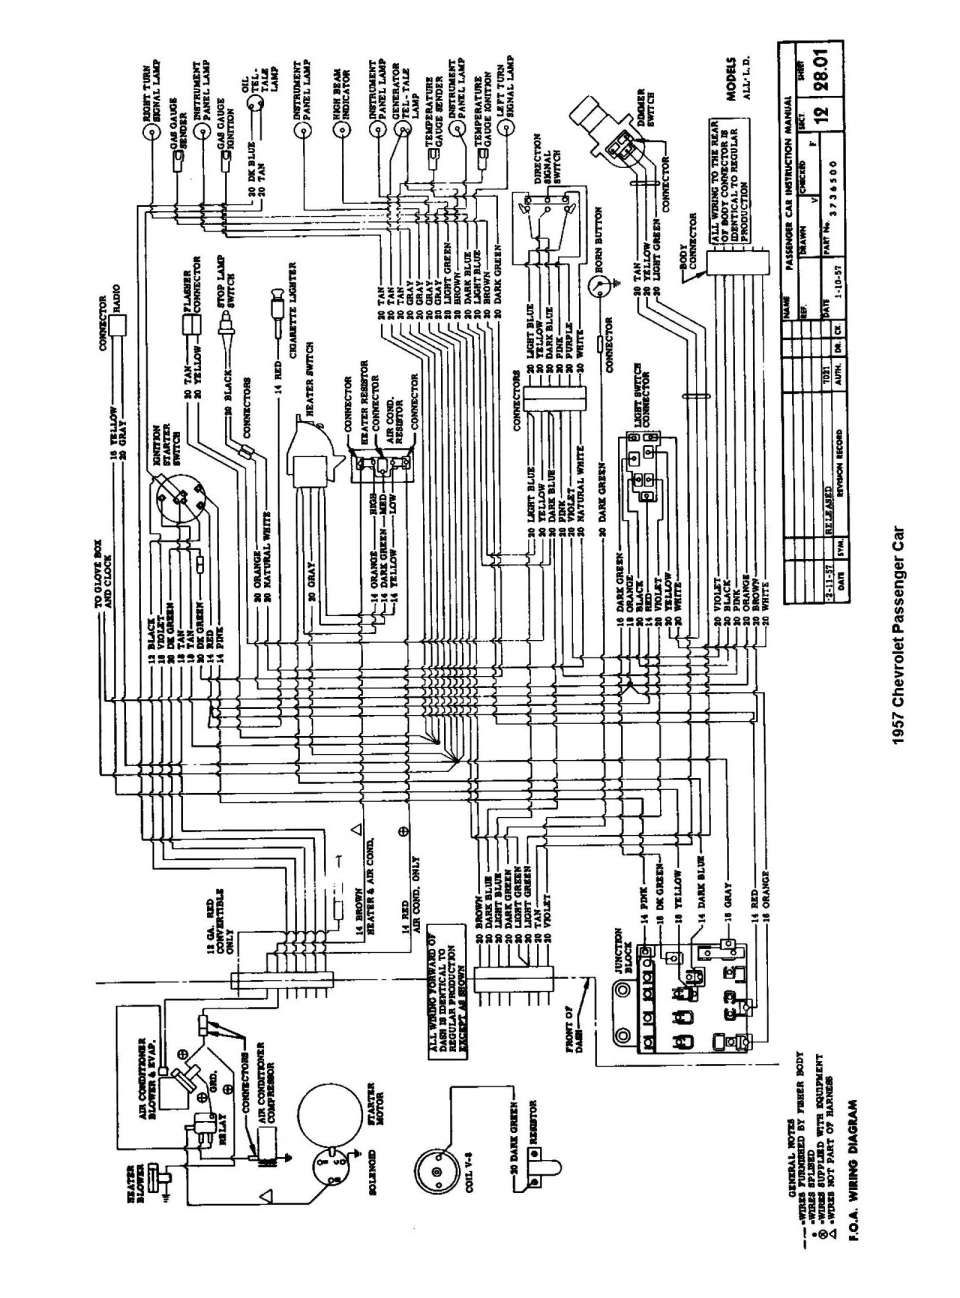 54 Chevy Wiring Diagram